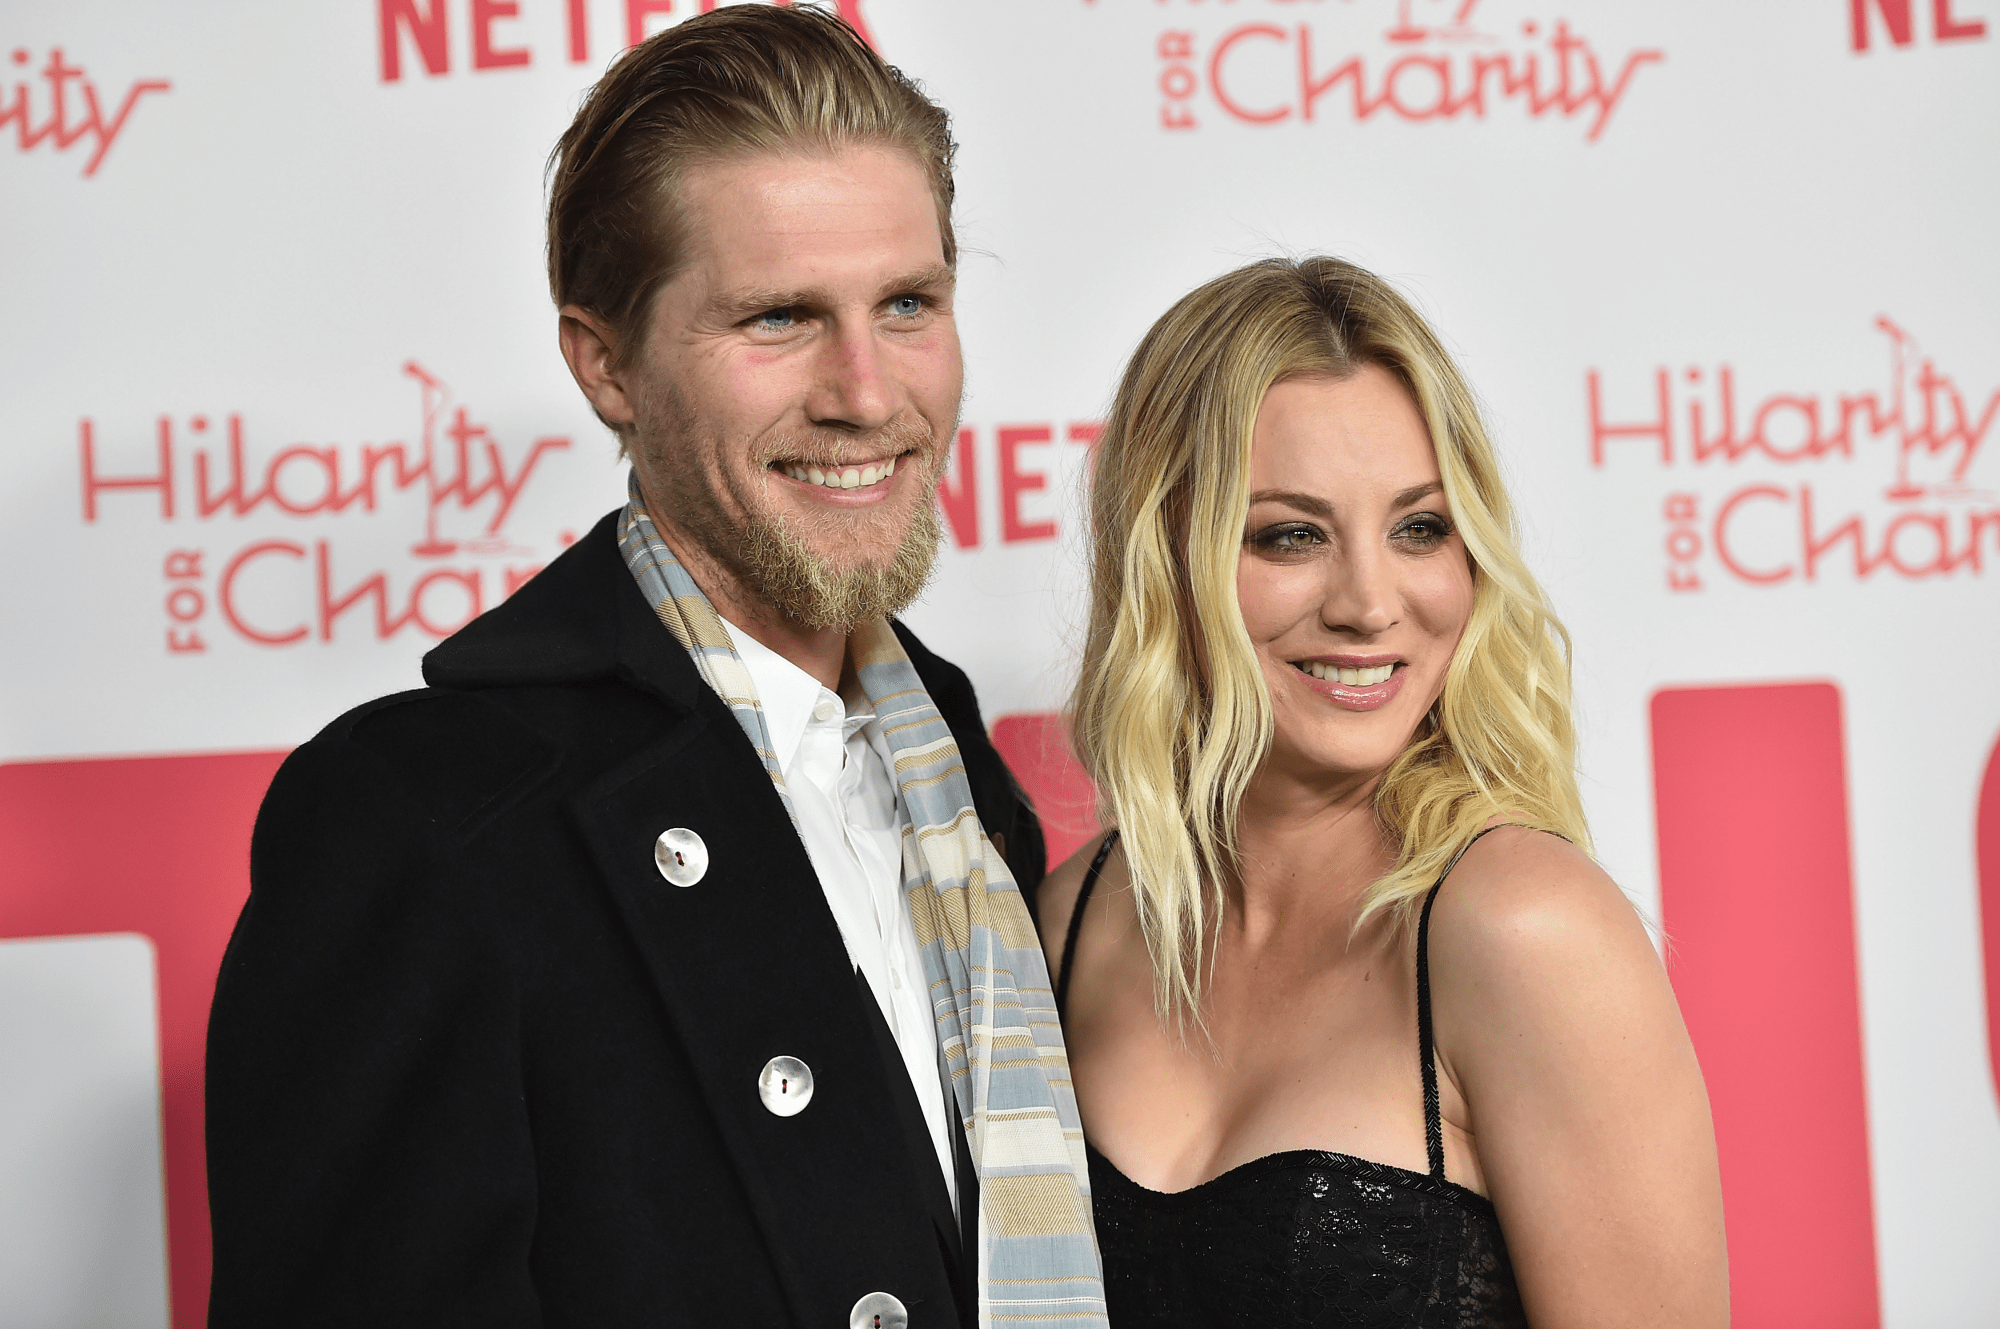 Kaley Cuoco And Karl Cook Divorce Actress Wows In Leggy Look Amid Divorce!